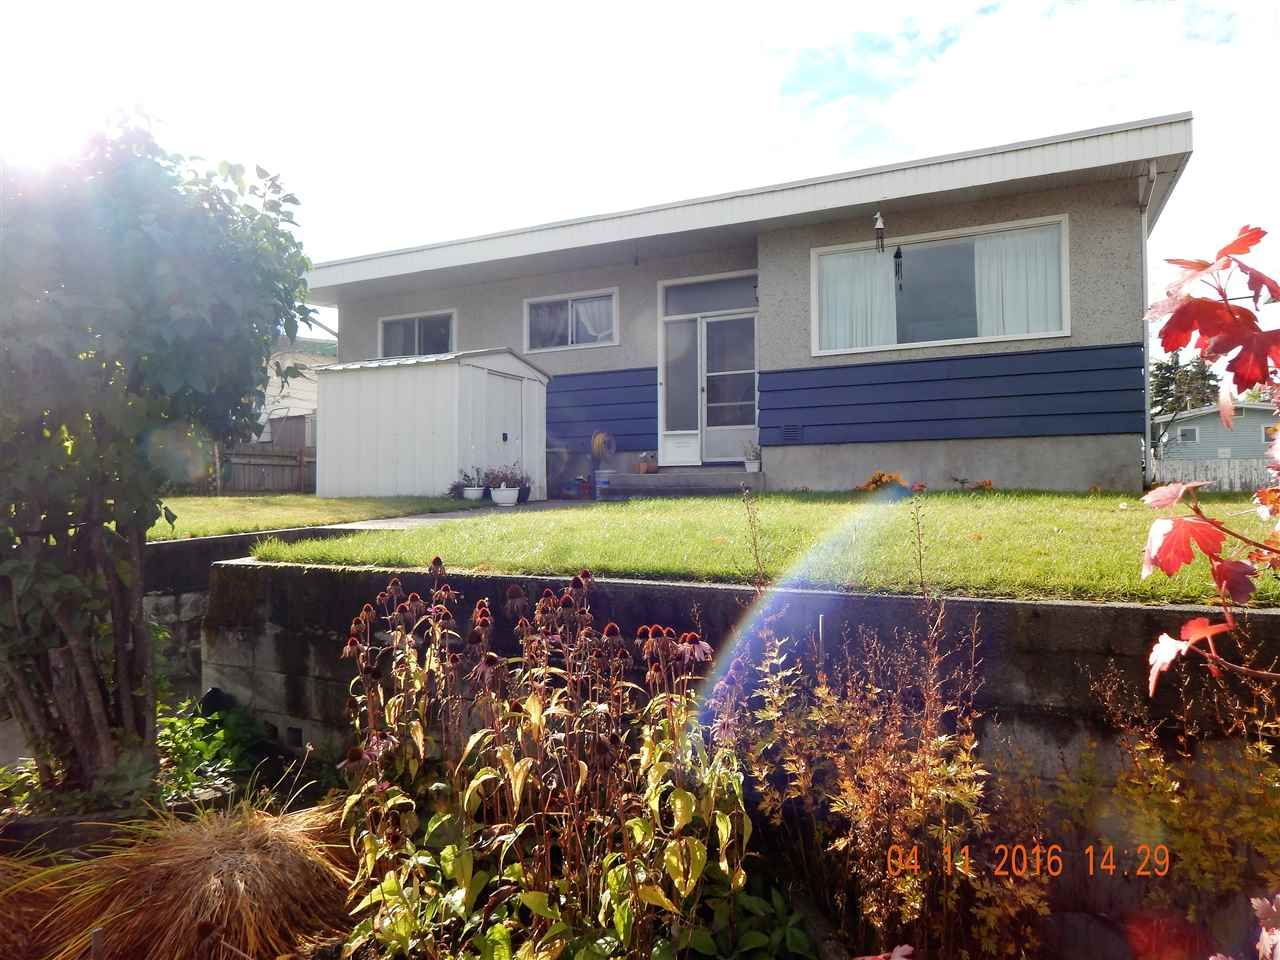 Main Photo: 321 LYON Street in Prince George: Quinson House for sale (PG City West (Zone 71))  : MLS®# R2114589